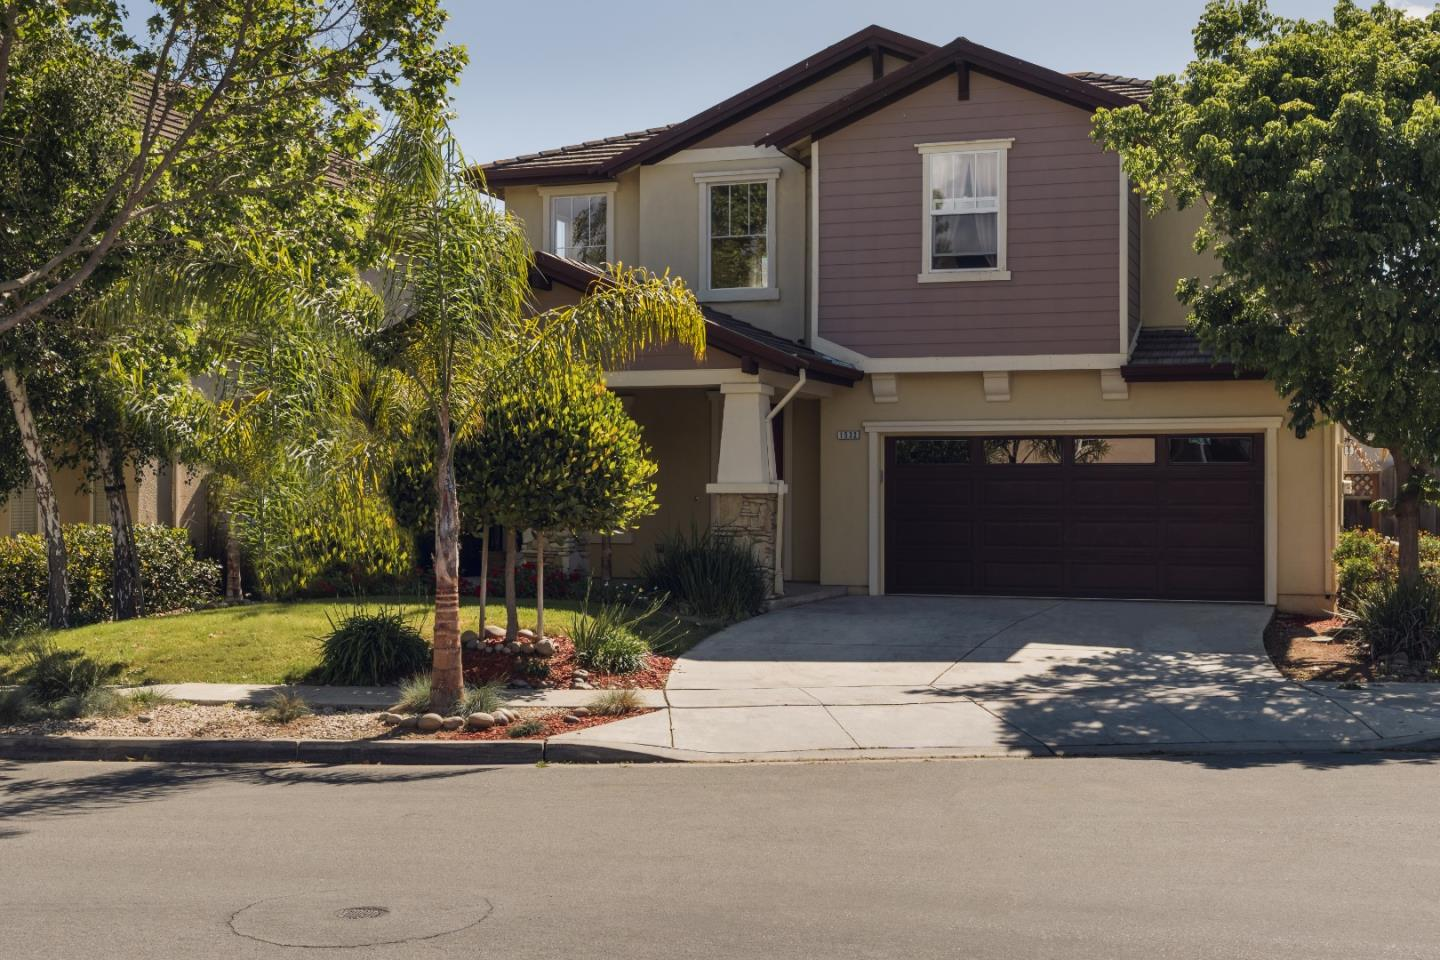 Detail Gallery Image 1 of 42 For 1532 Spoleto St, Salinas, CA 93905 - 4 Beds | 2/1 Baths